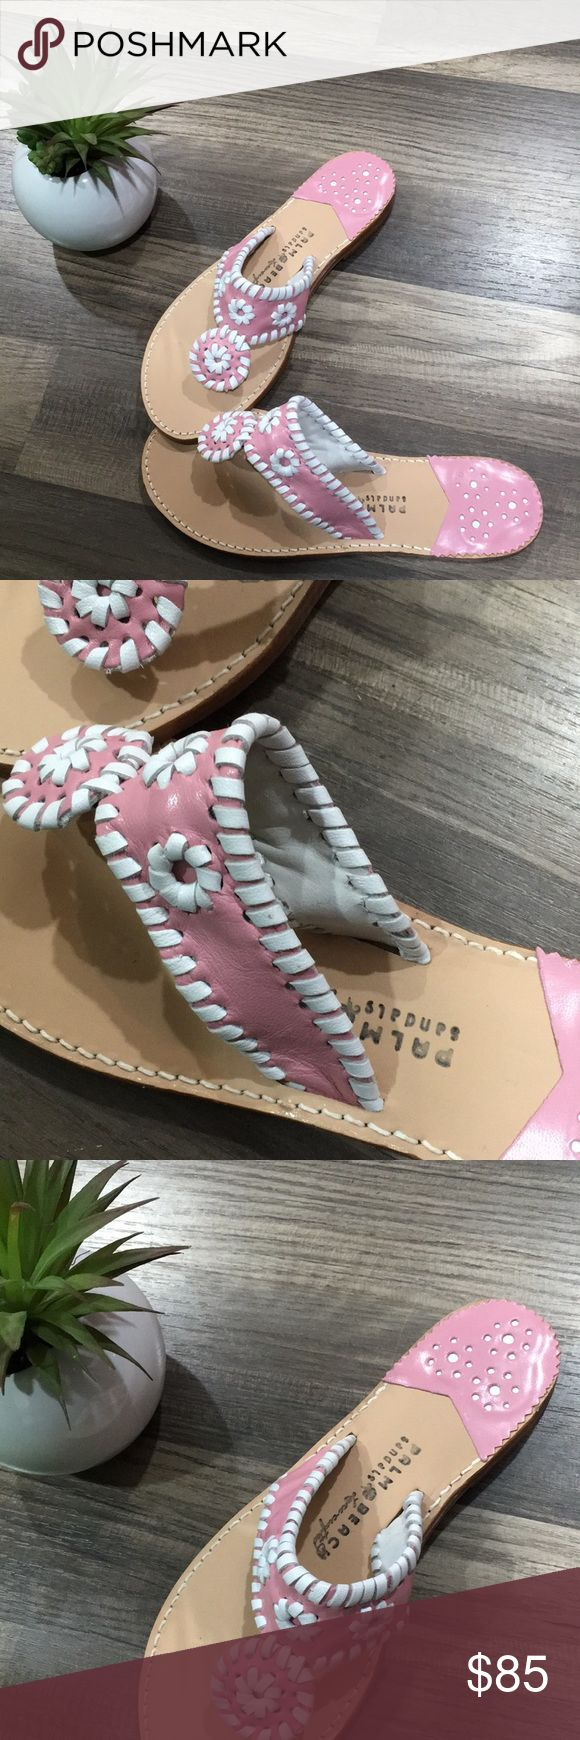 Jack Rogers palm beach pink sandals slides NEW 8 Palm beach sandals by jack Rogers. New without box. Size 8. Pink/white leather. Retails for $129+ Jack Rogers Shoes Sandals